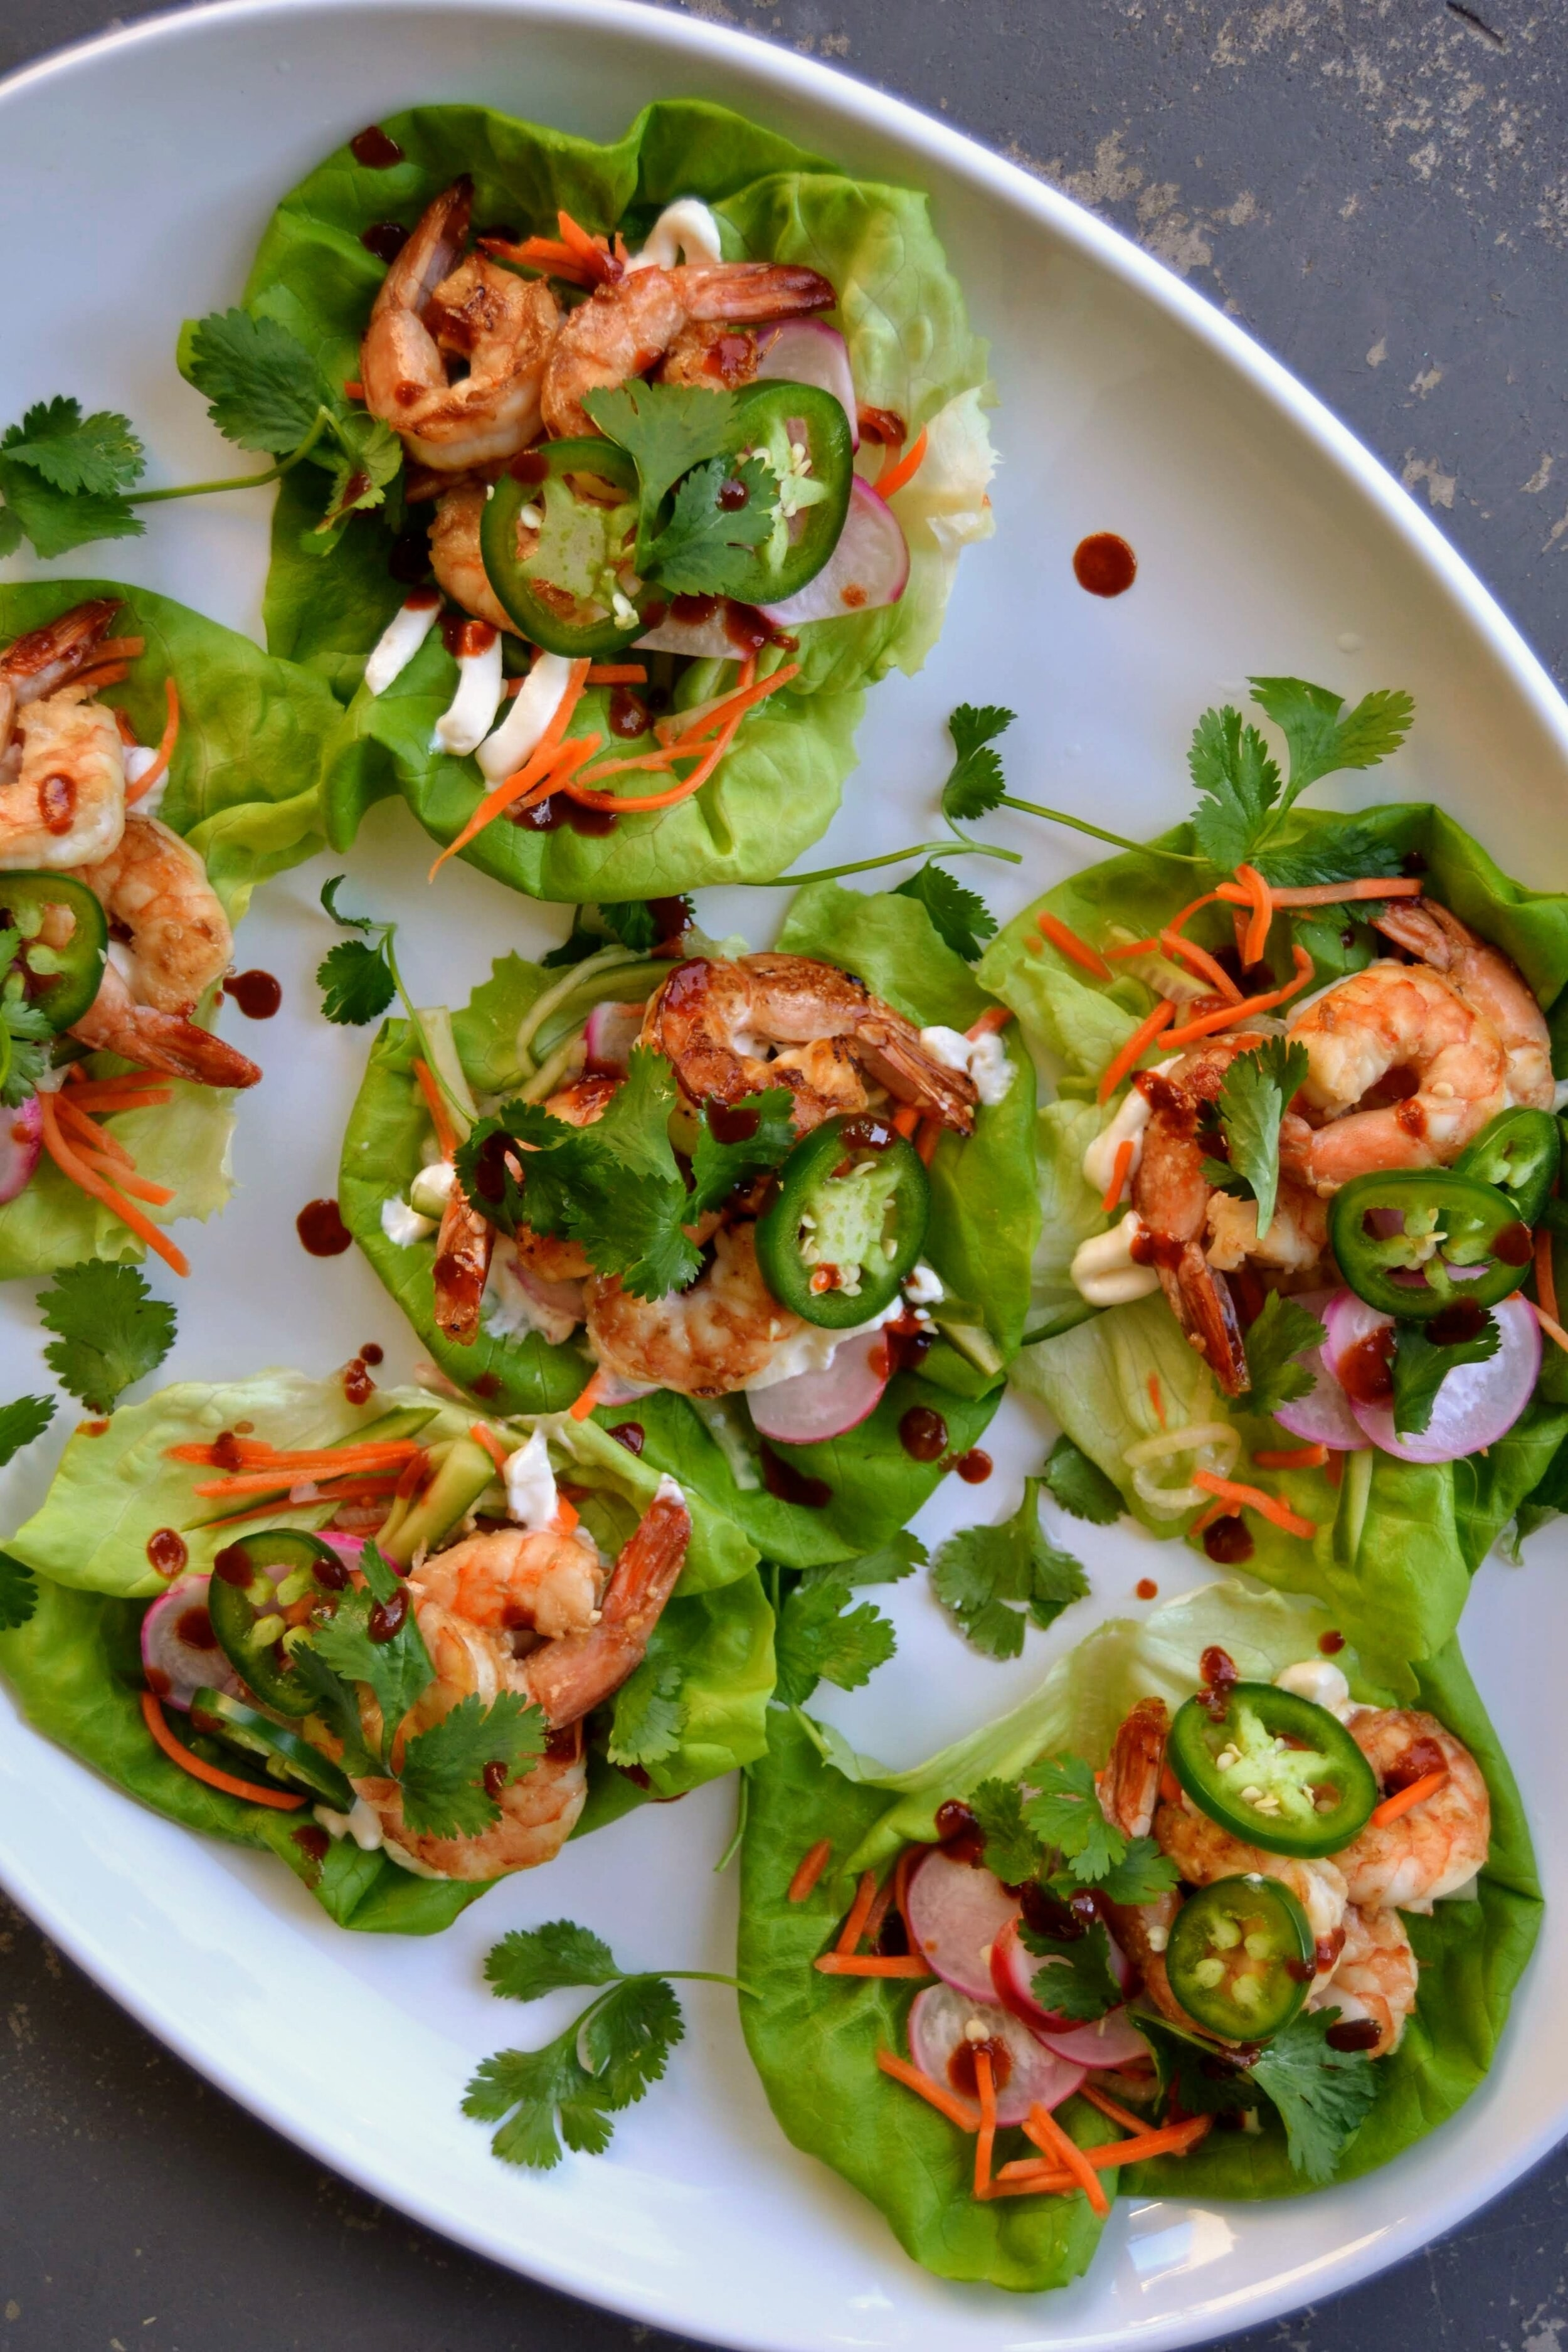 Lettuce cups filled with shrimp, radishes, carrots, jalapeño, and herbs.